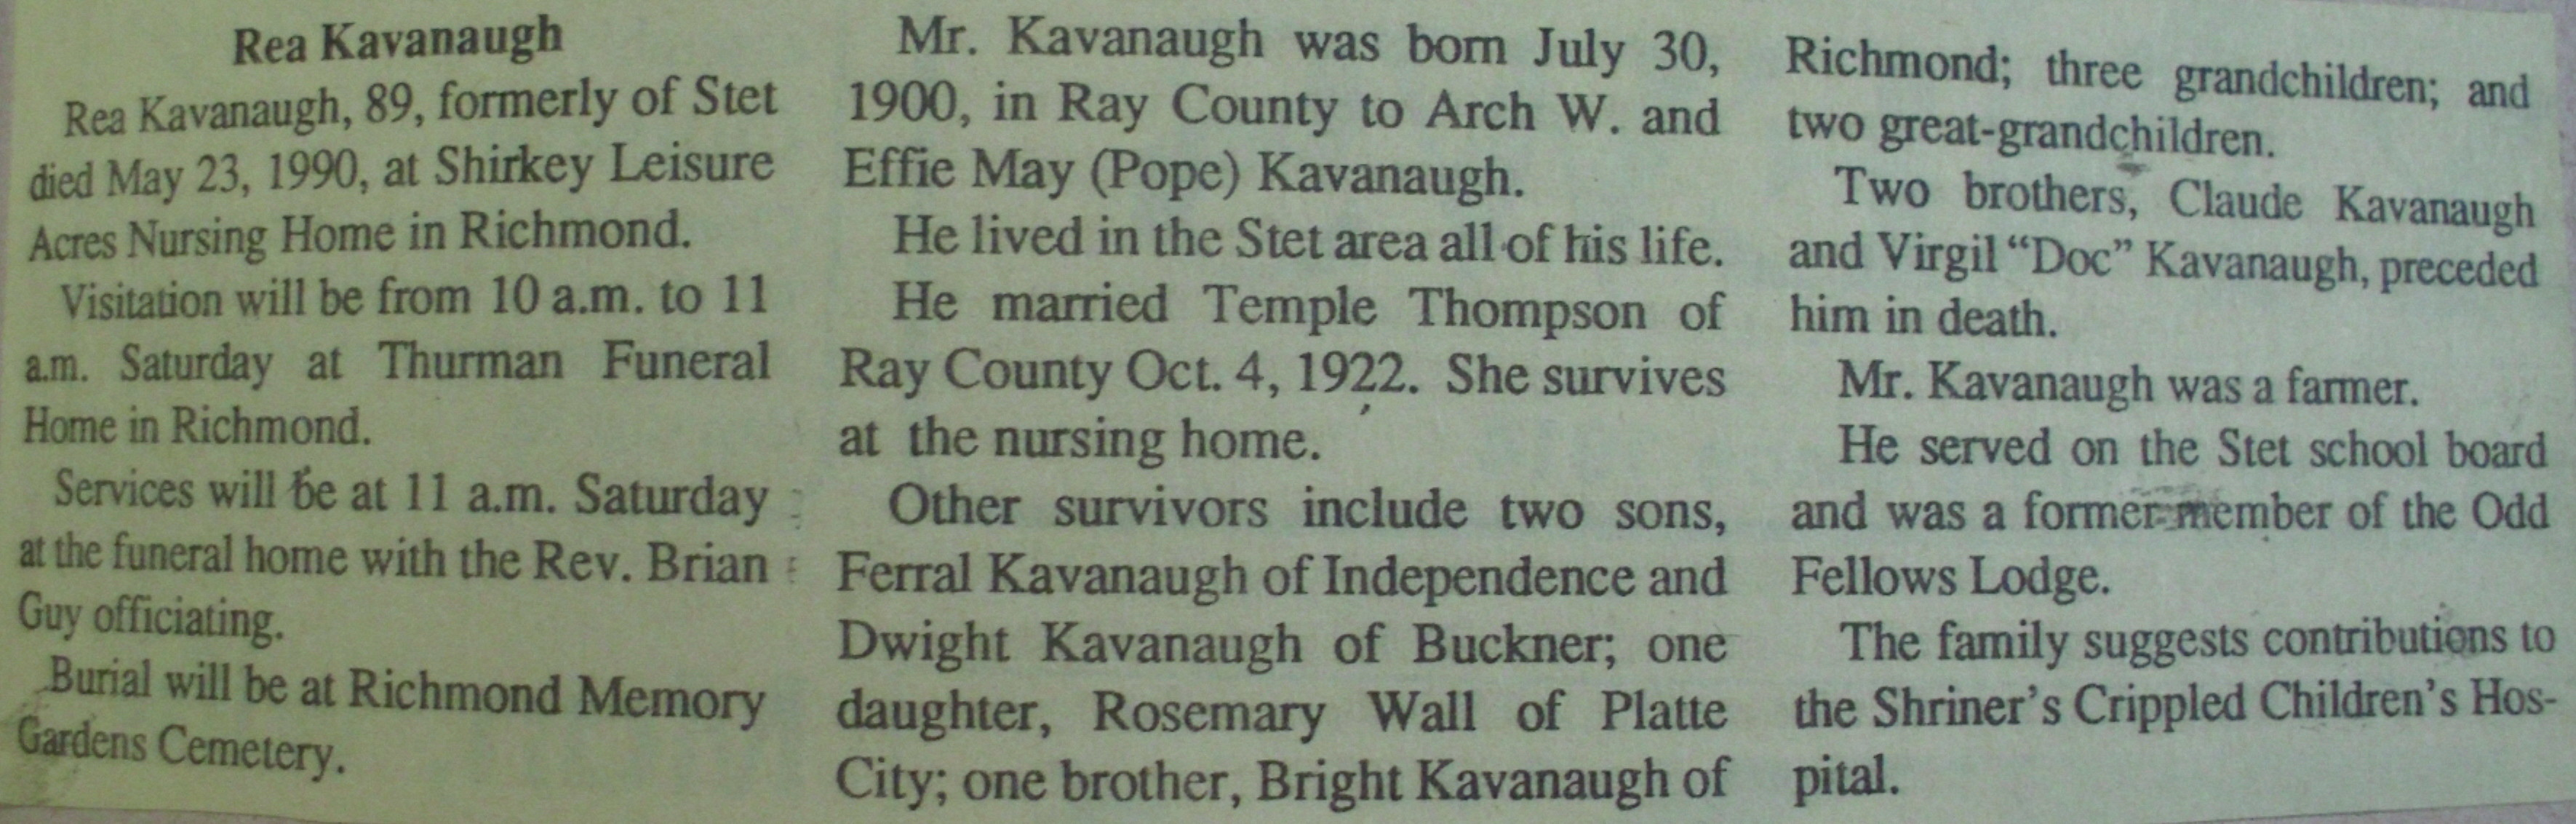 Doniphan Amonett Kavanaugh